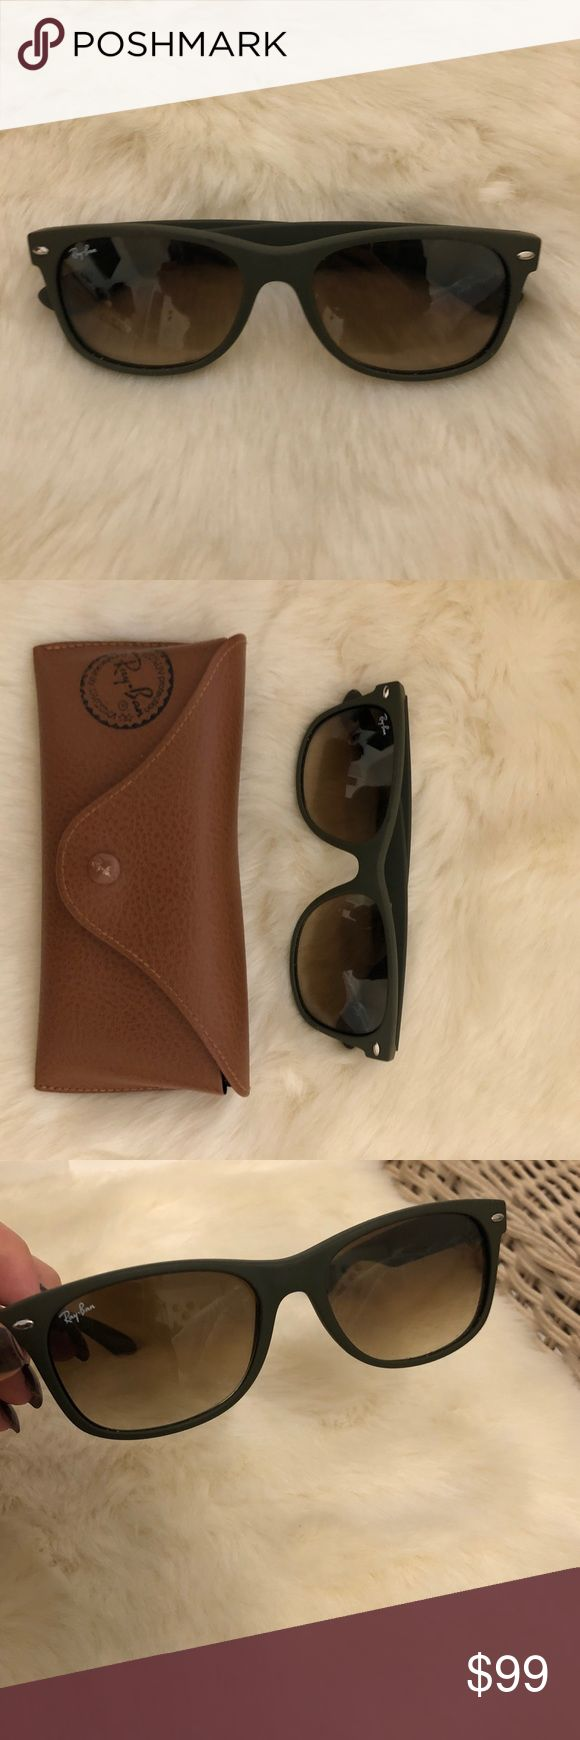 Green Wayfarer Ray-Ban Forest green Wayfarer style Ray Bans. Excellent condition, barely used. Rims are a matte finish and lenses are a brown mirror (darker on top lighter on bottom). Size is best for smaller & medium size faces (women). Unique & hard to find elsewhere. Make an offer! Ray-Ban Accessories Sunglasses